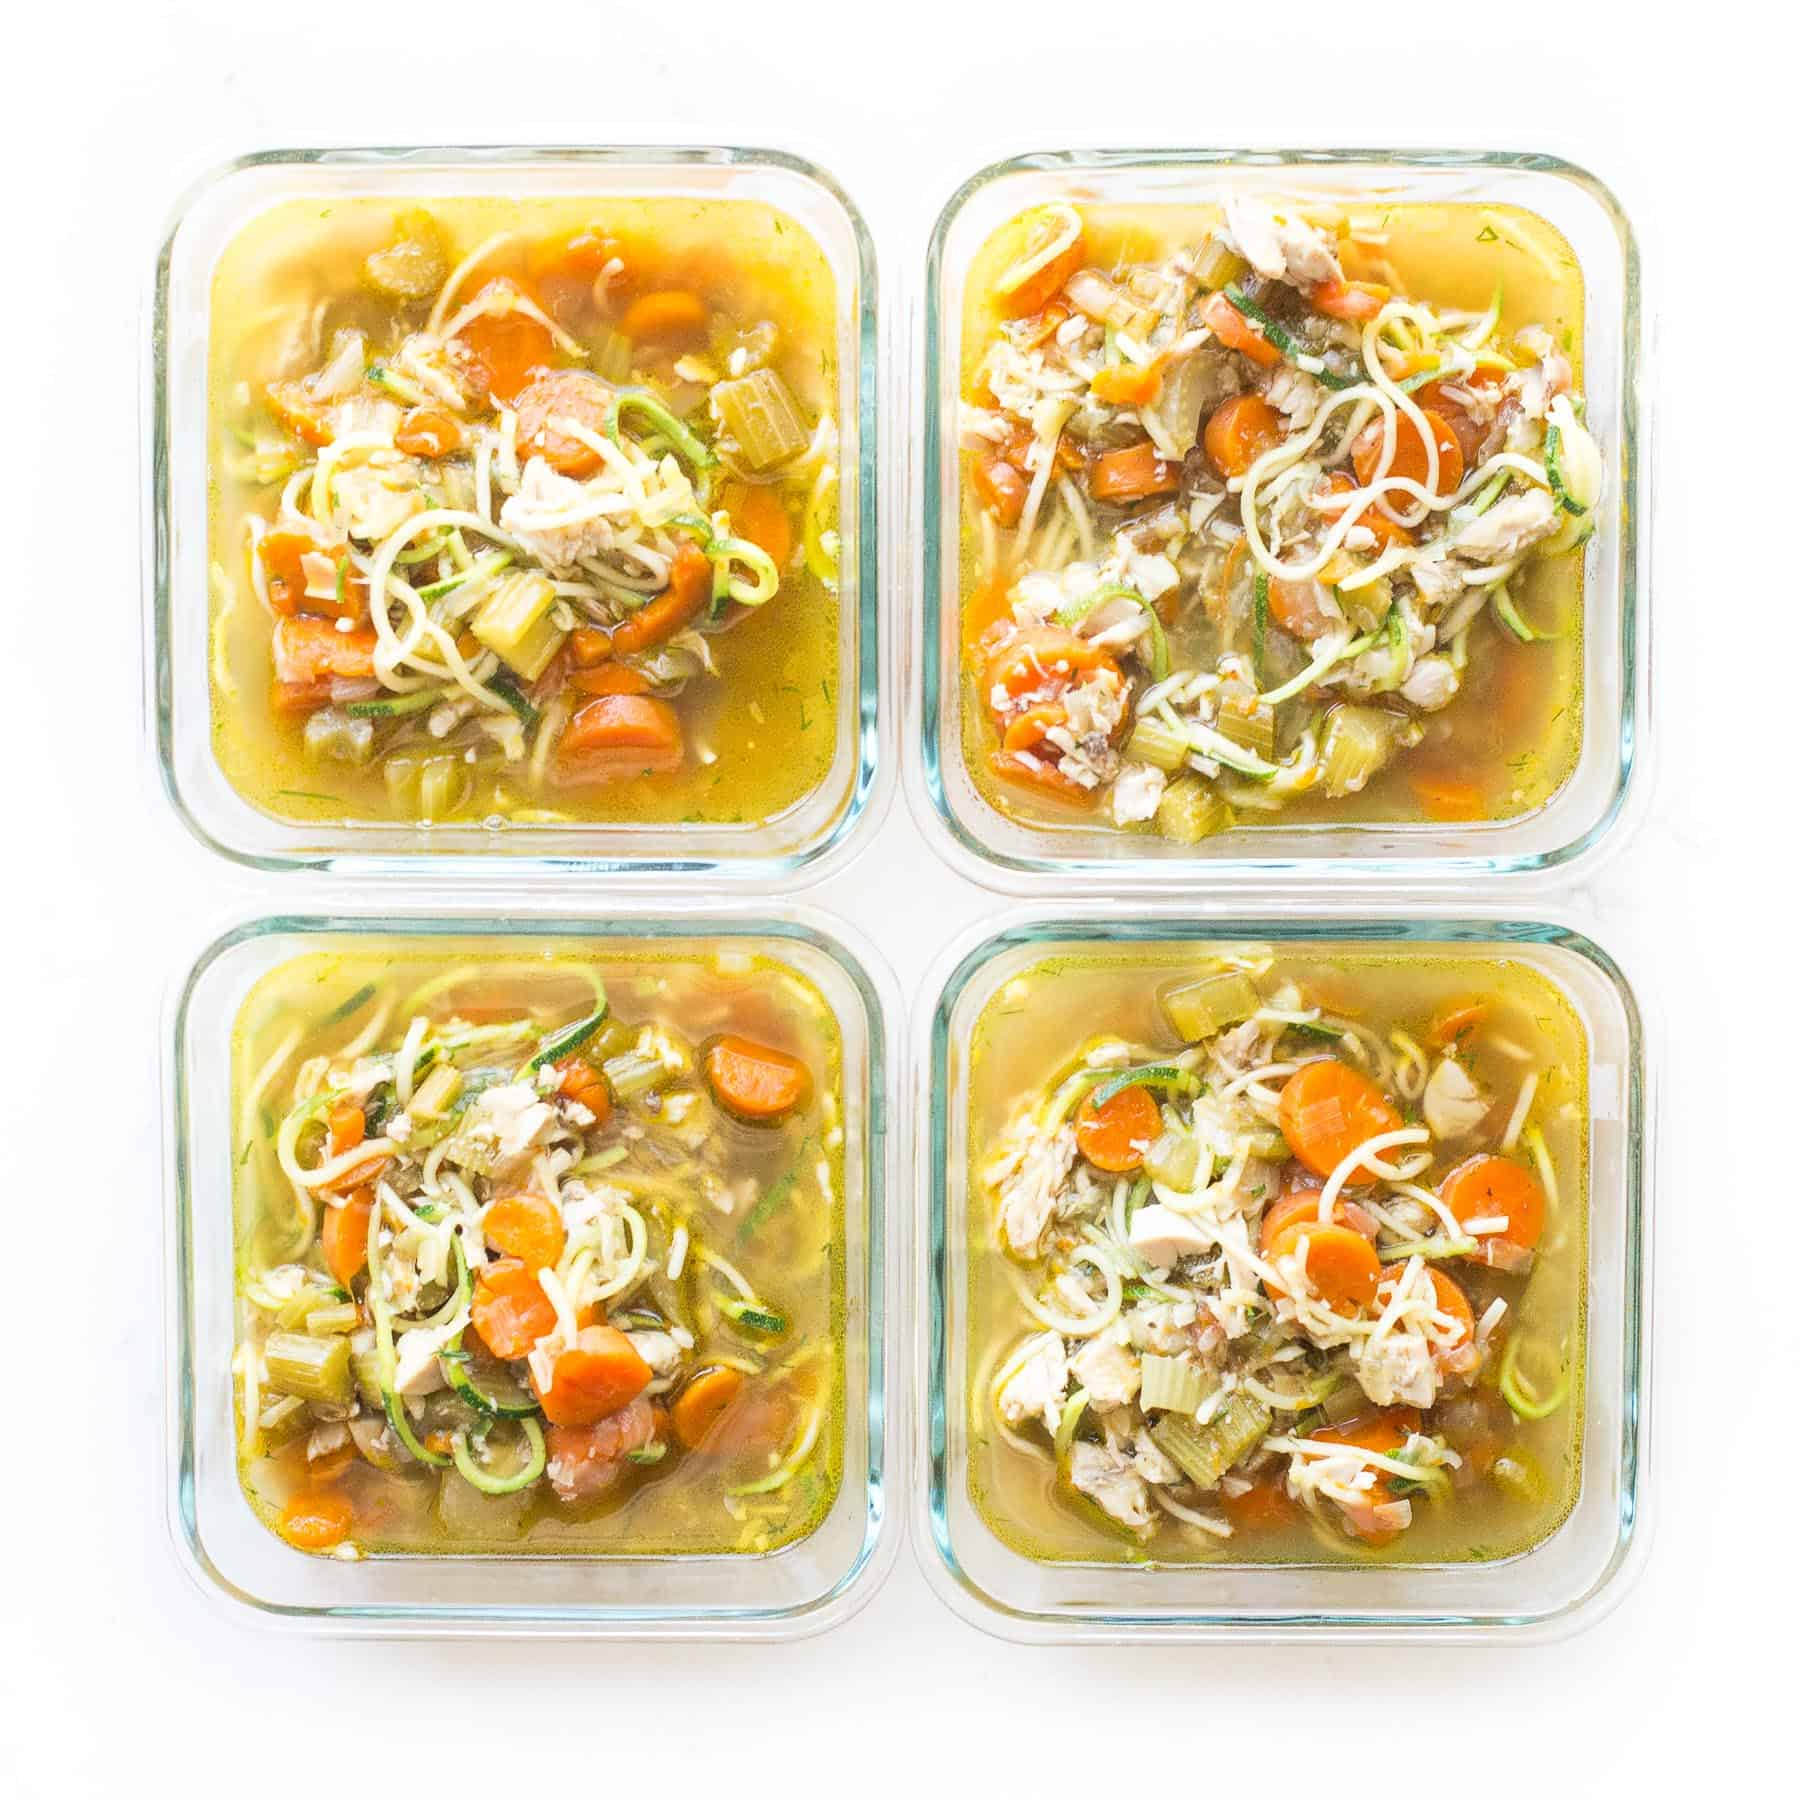 chicken zoodle soup in meal prep containers on a white background